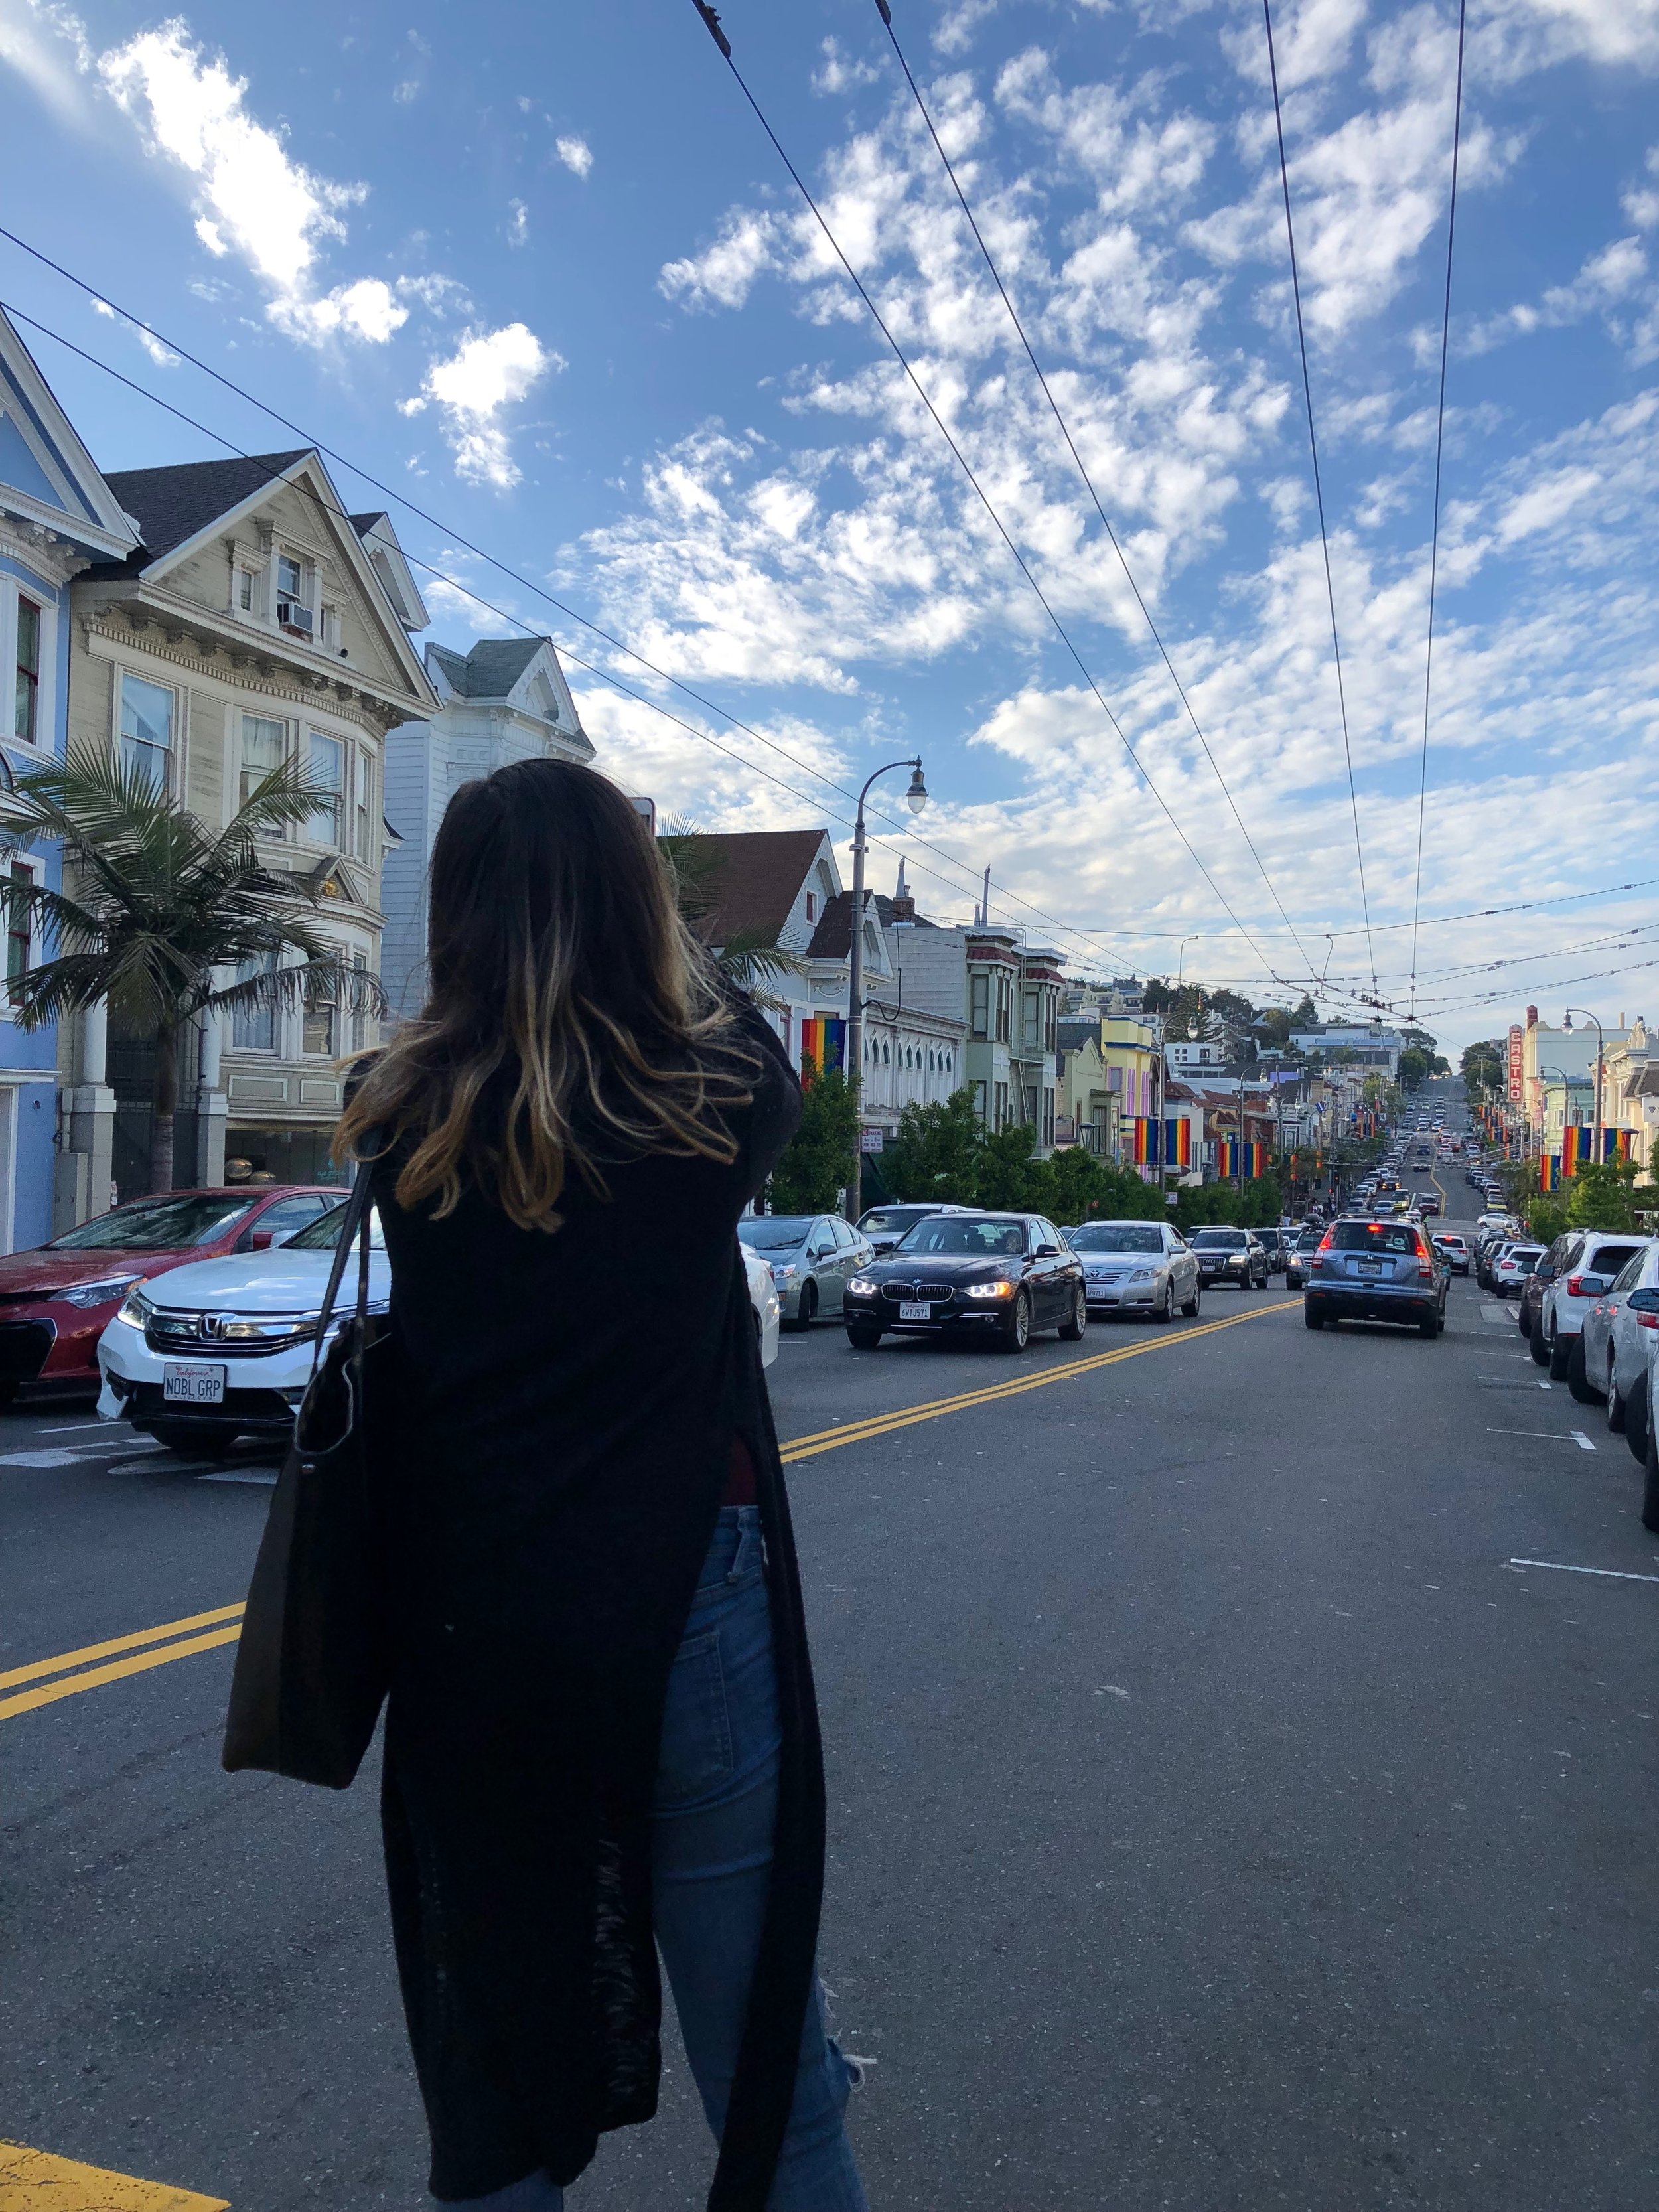 Boston is a progressive city, but I have never felt more open-armed love seeping out of every corner than I did exploring The Castro. Seeing that pride flag shining on a hill induced hard tears I didn't know I had.